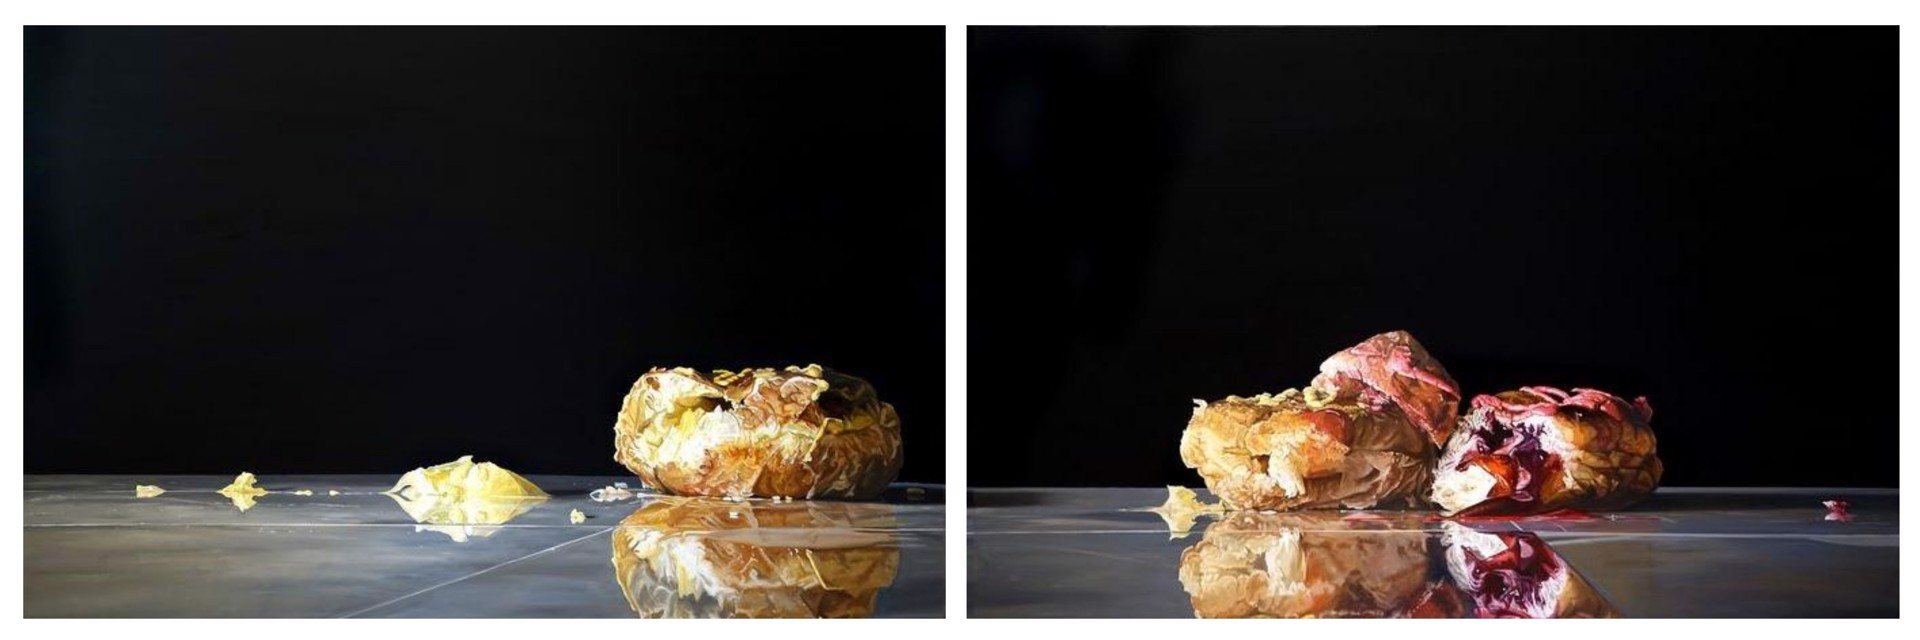 Ooze (Triptych, Diptych, or Single) by Denise Stewart-Sanabria